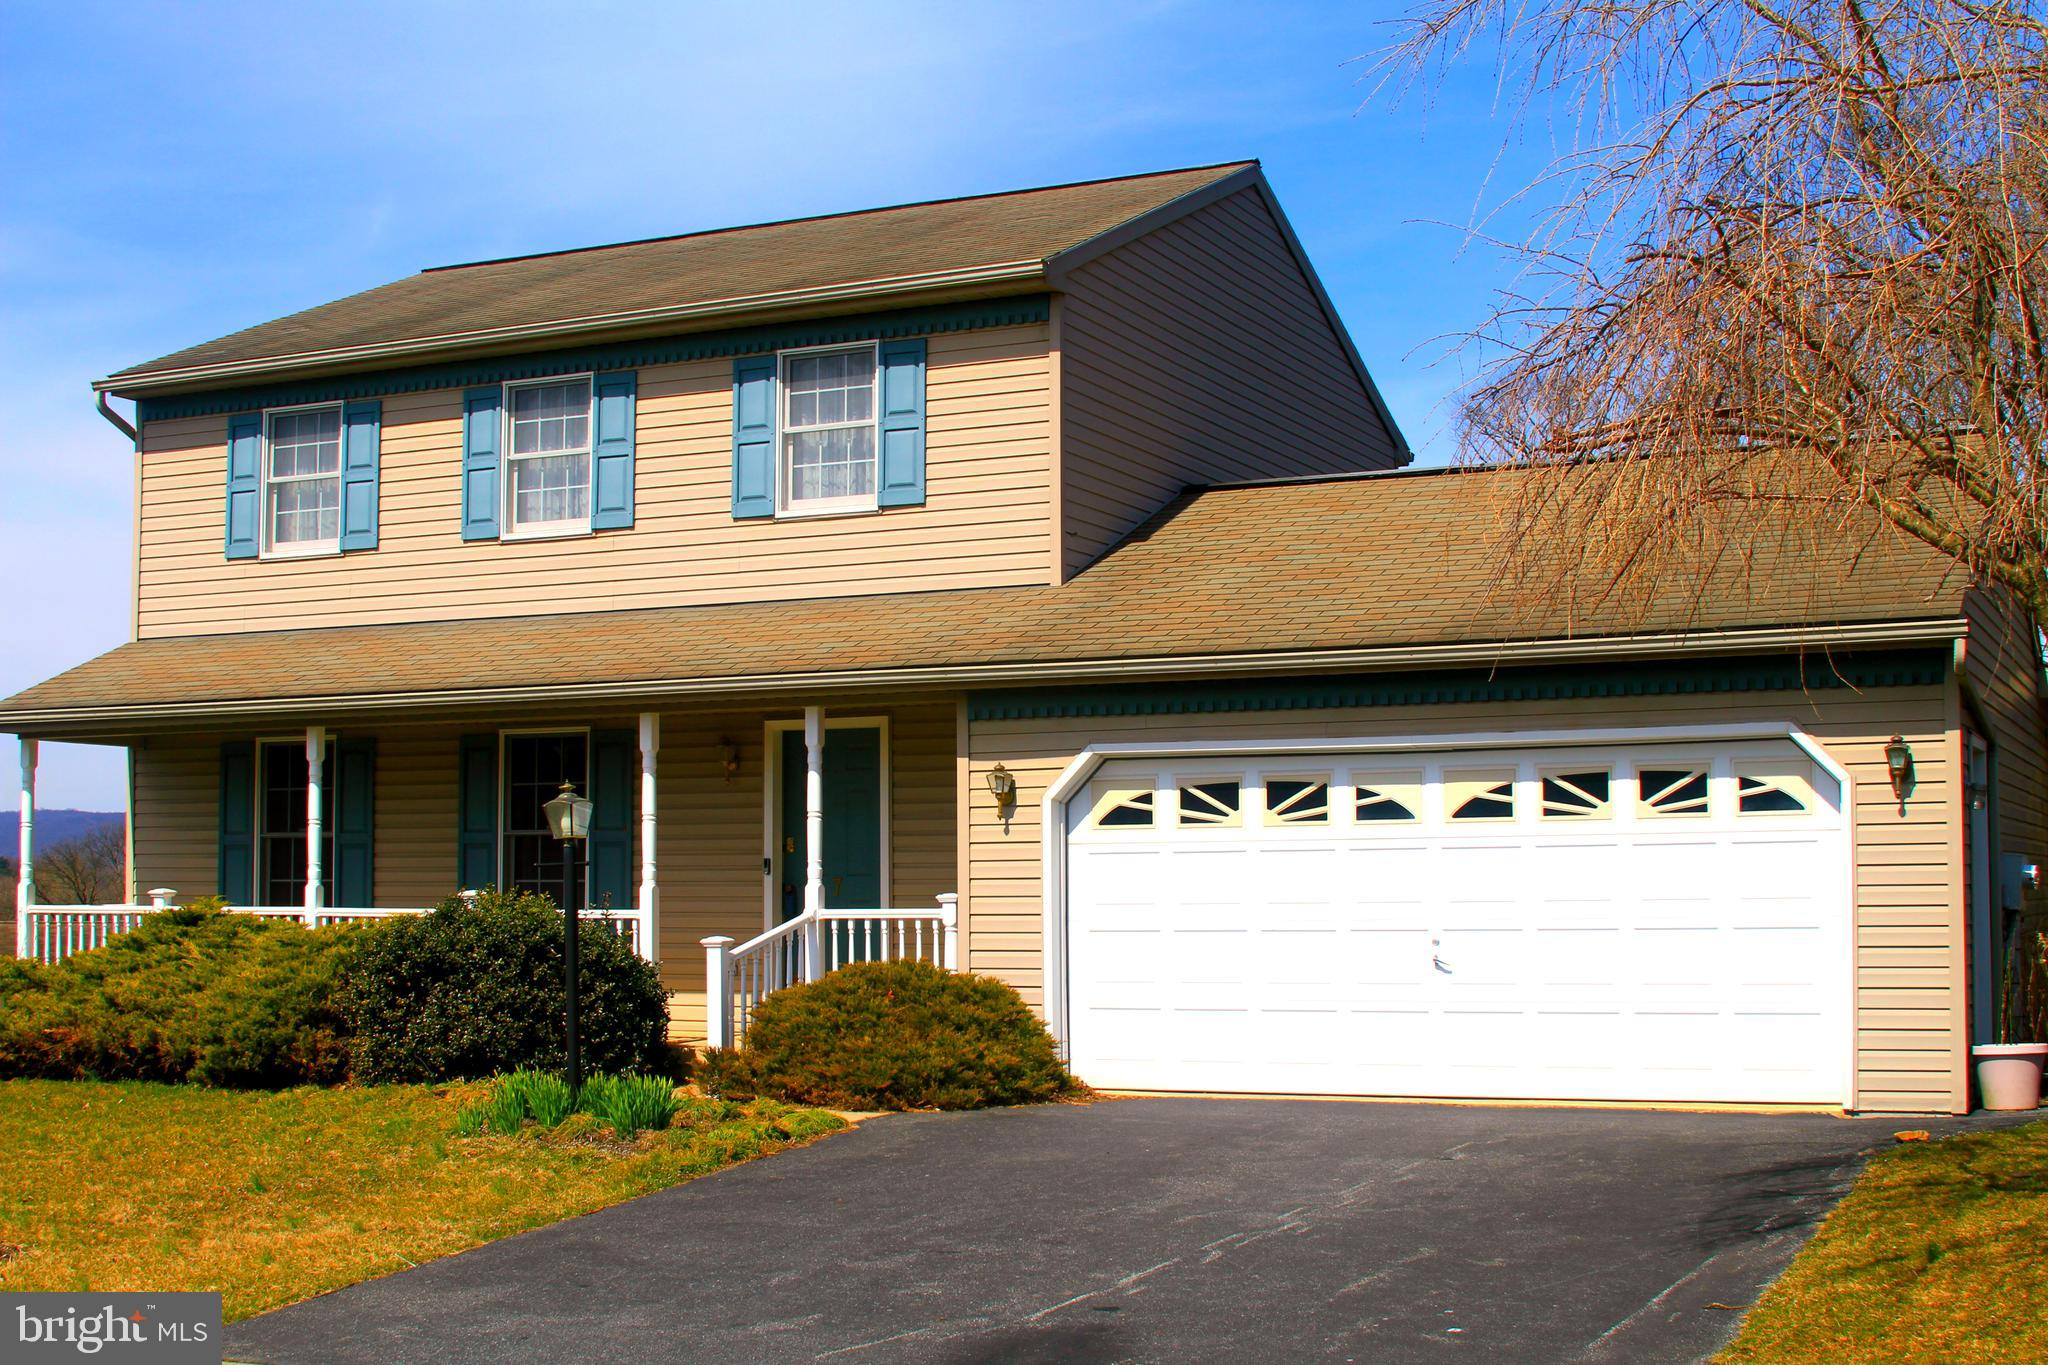 7 STEEPLE COURT, REINHOLDS, PA 17569